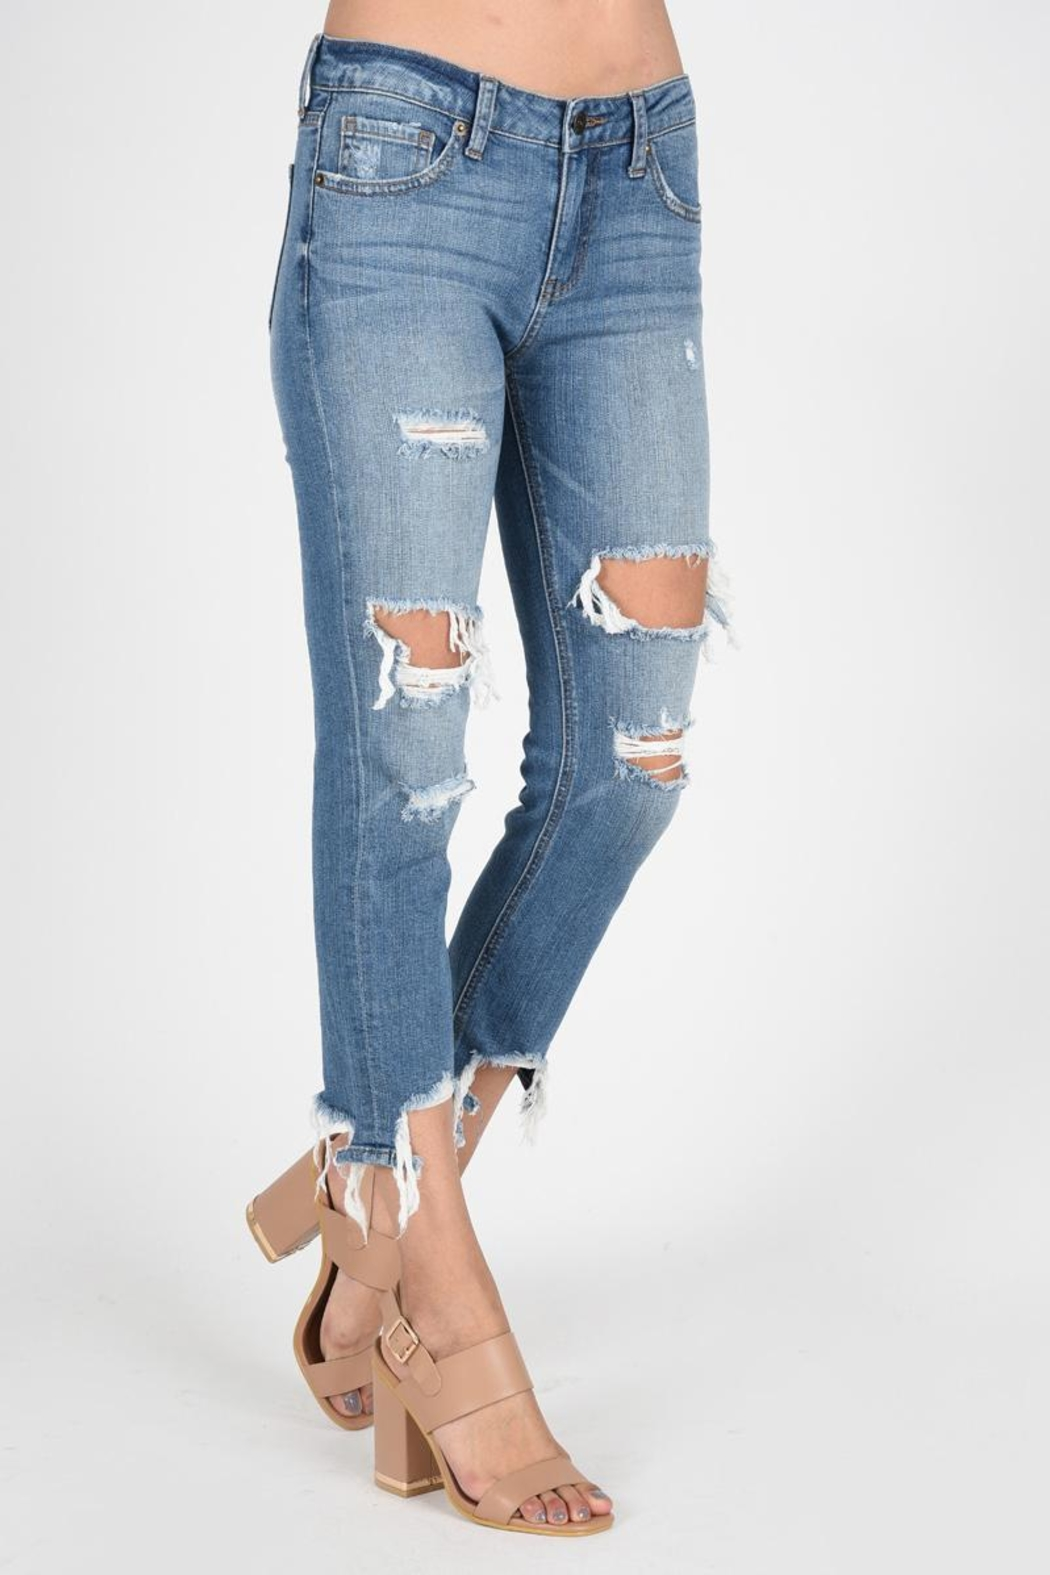 29c179f8305 JBD Destroyed Bf Jeans from California by Rose & Sage — Shoptiques